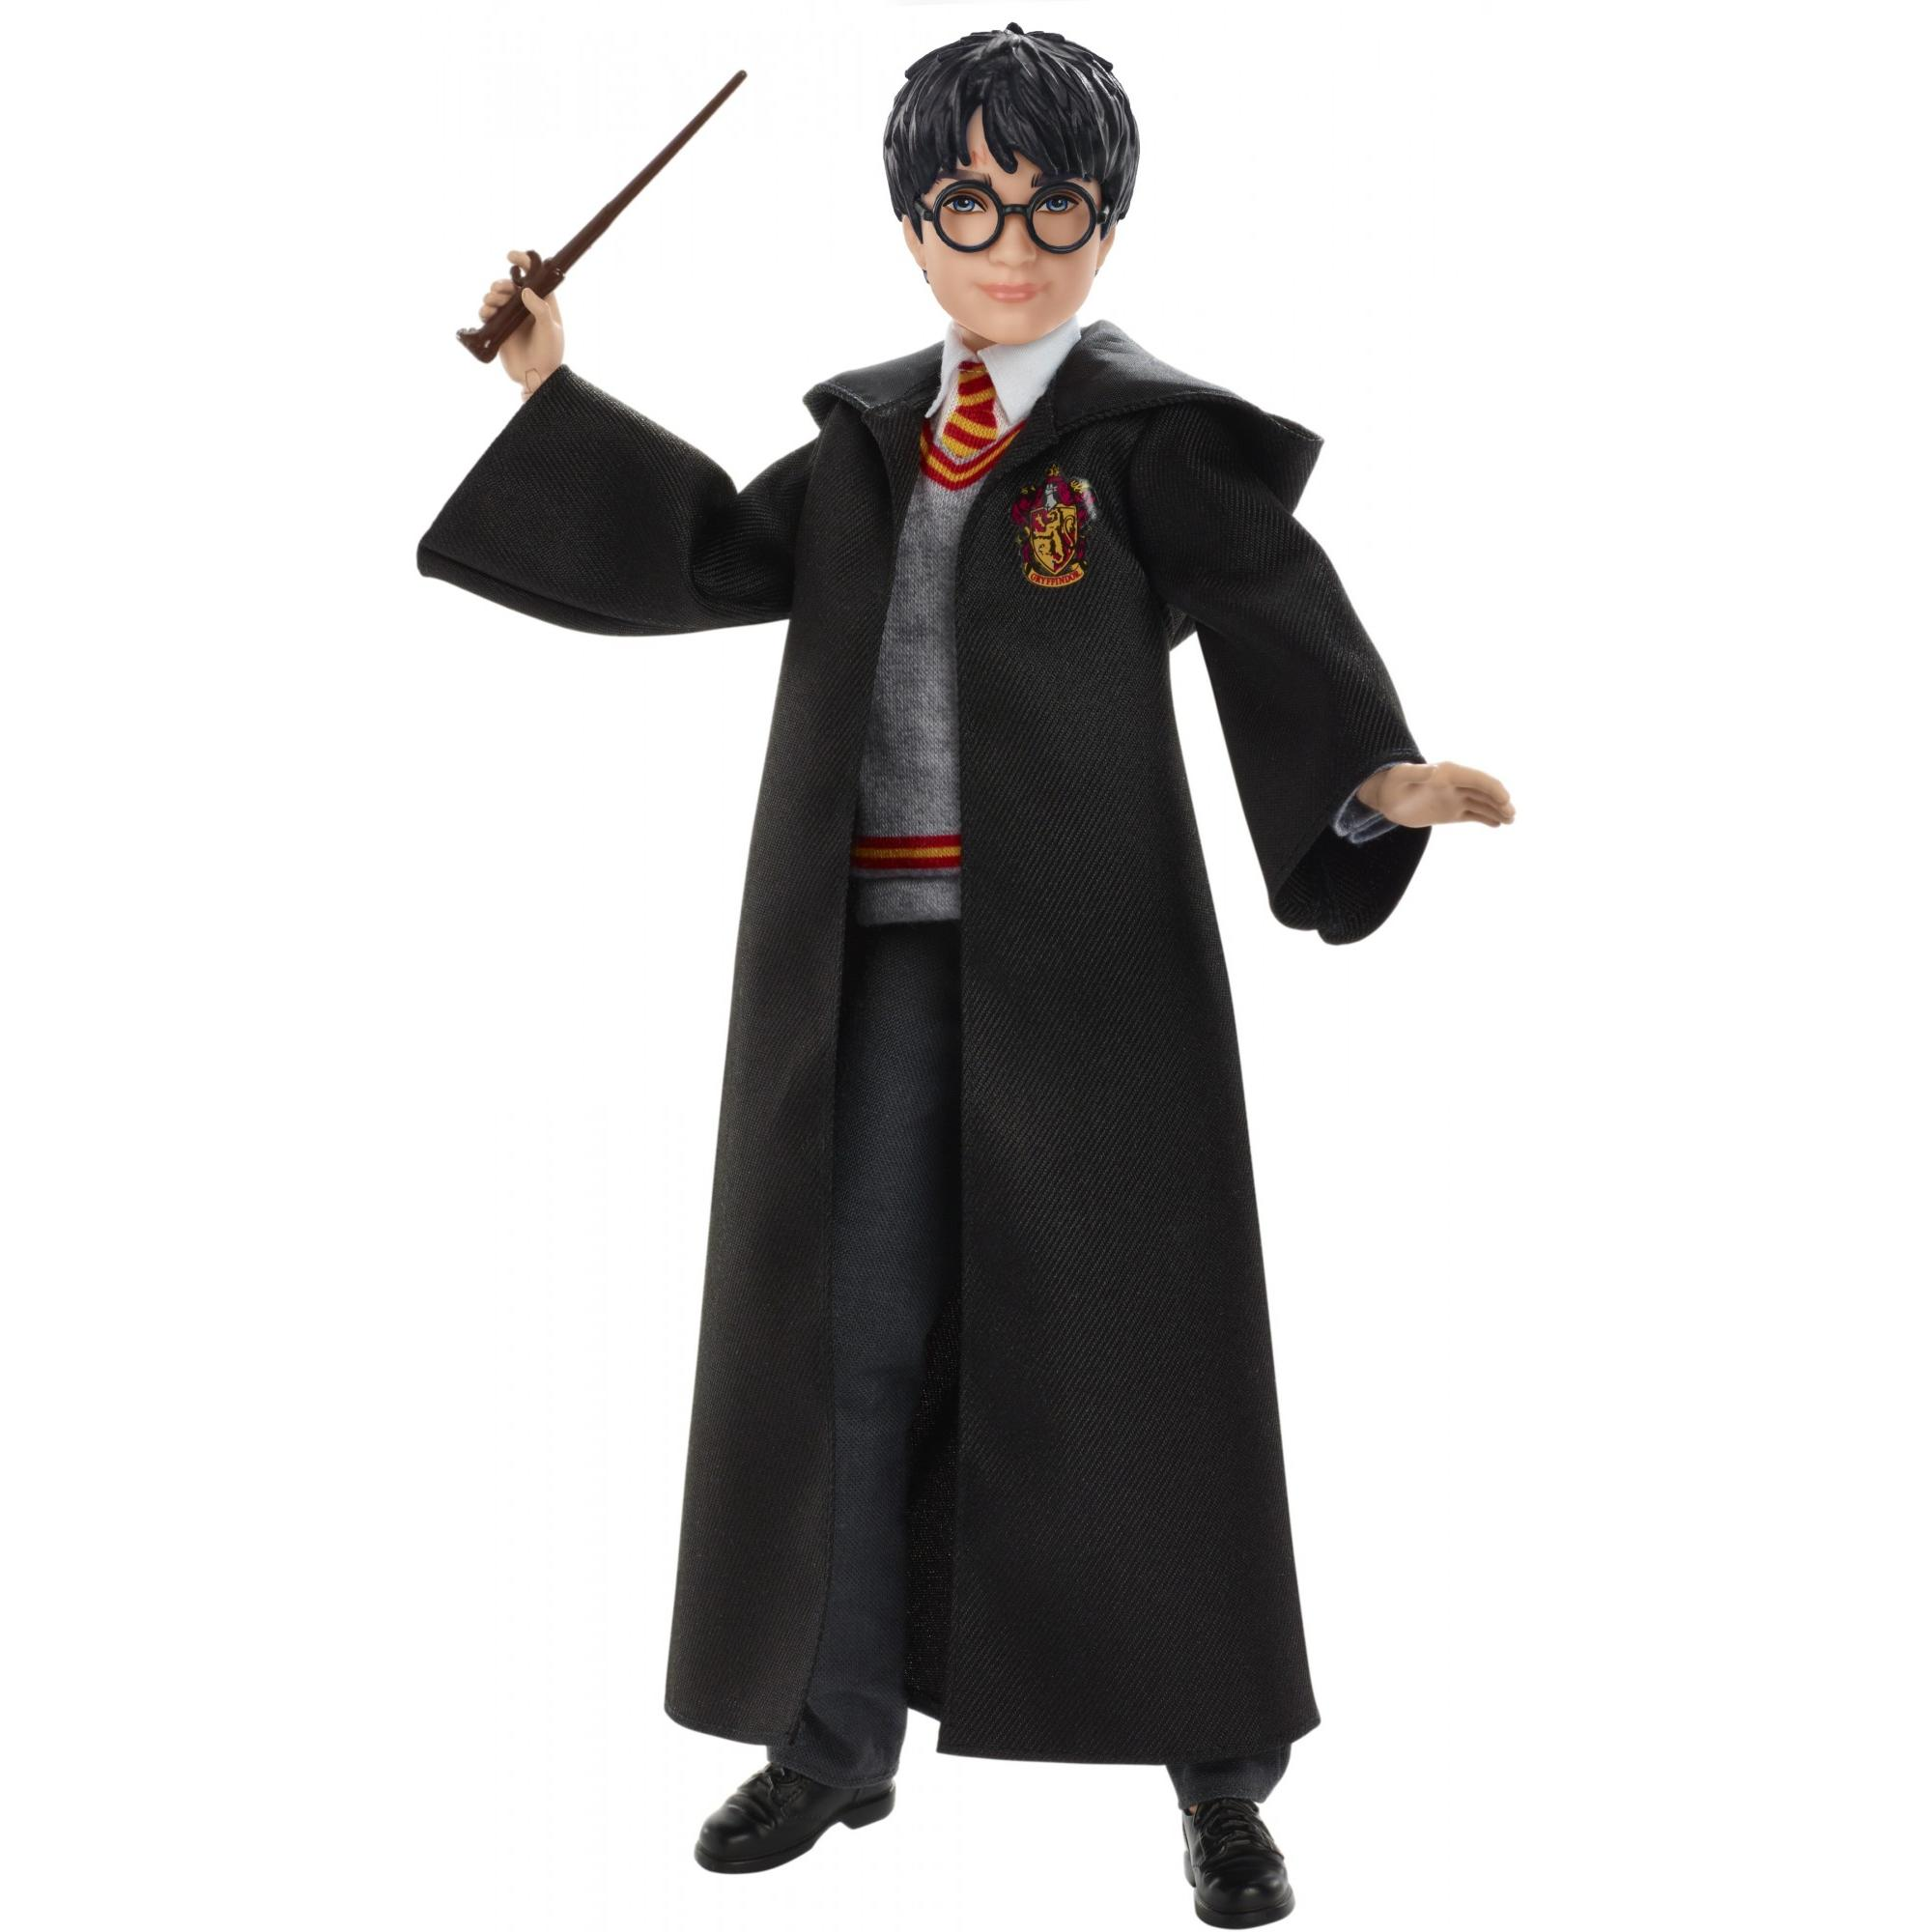 Harry Potter Harry Potter Film-Inspired Collector Doll by Harry Potter